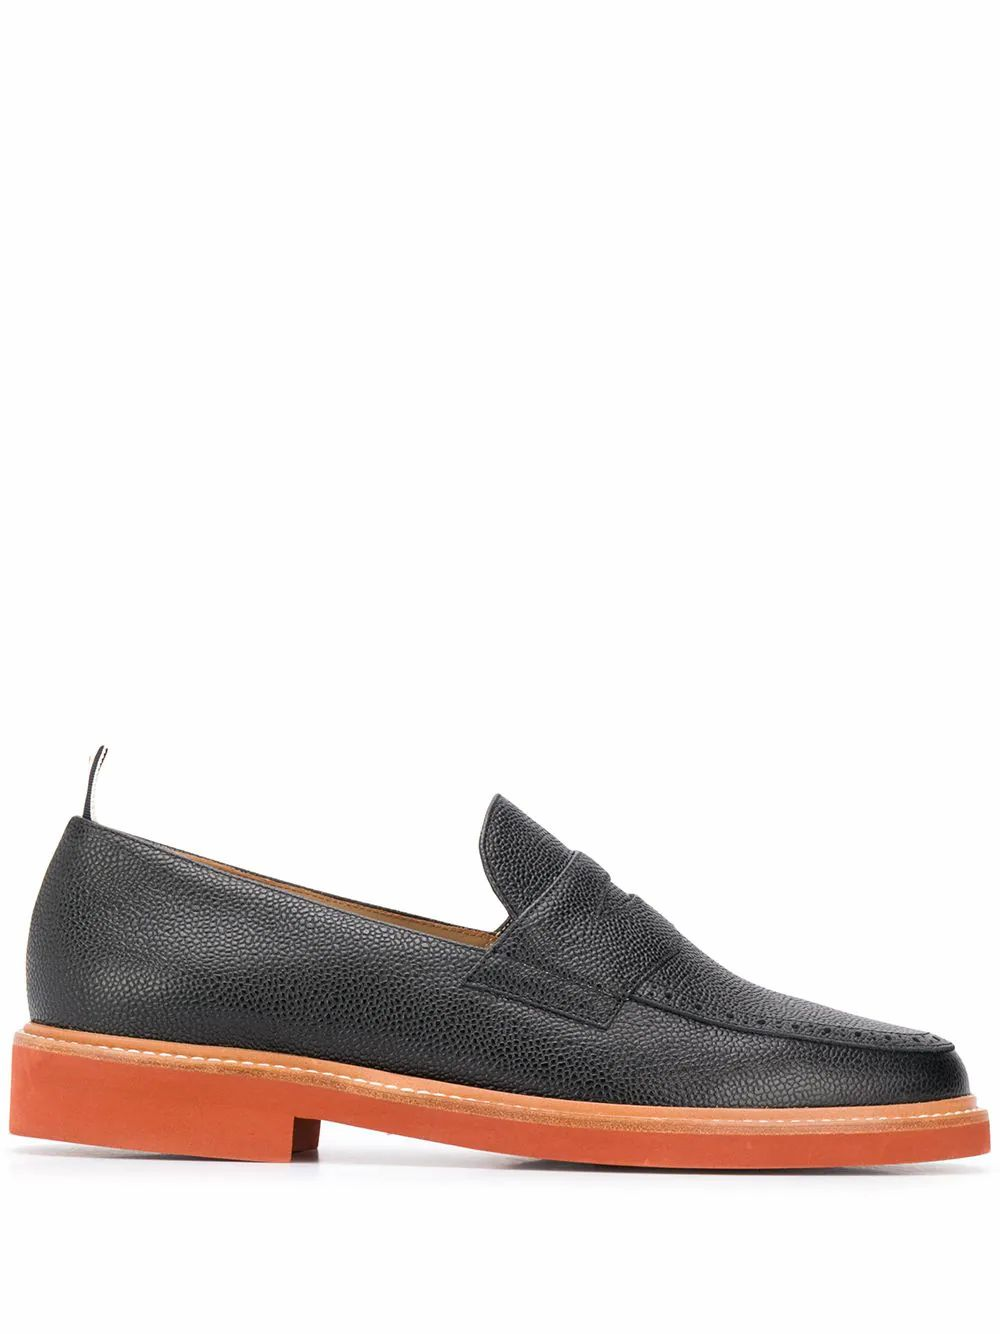 Thom Browne THOM BROWNE MEN'S MFD214A06257001 BLACK LEATHER LOAFERS